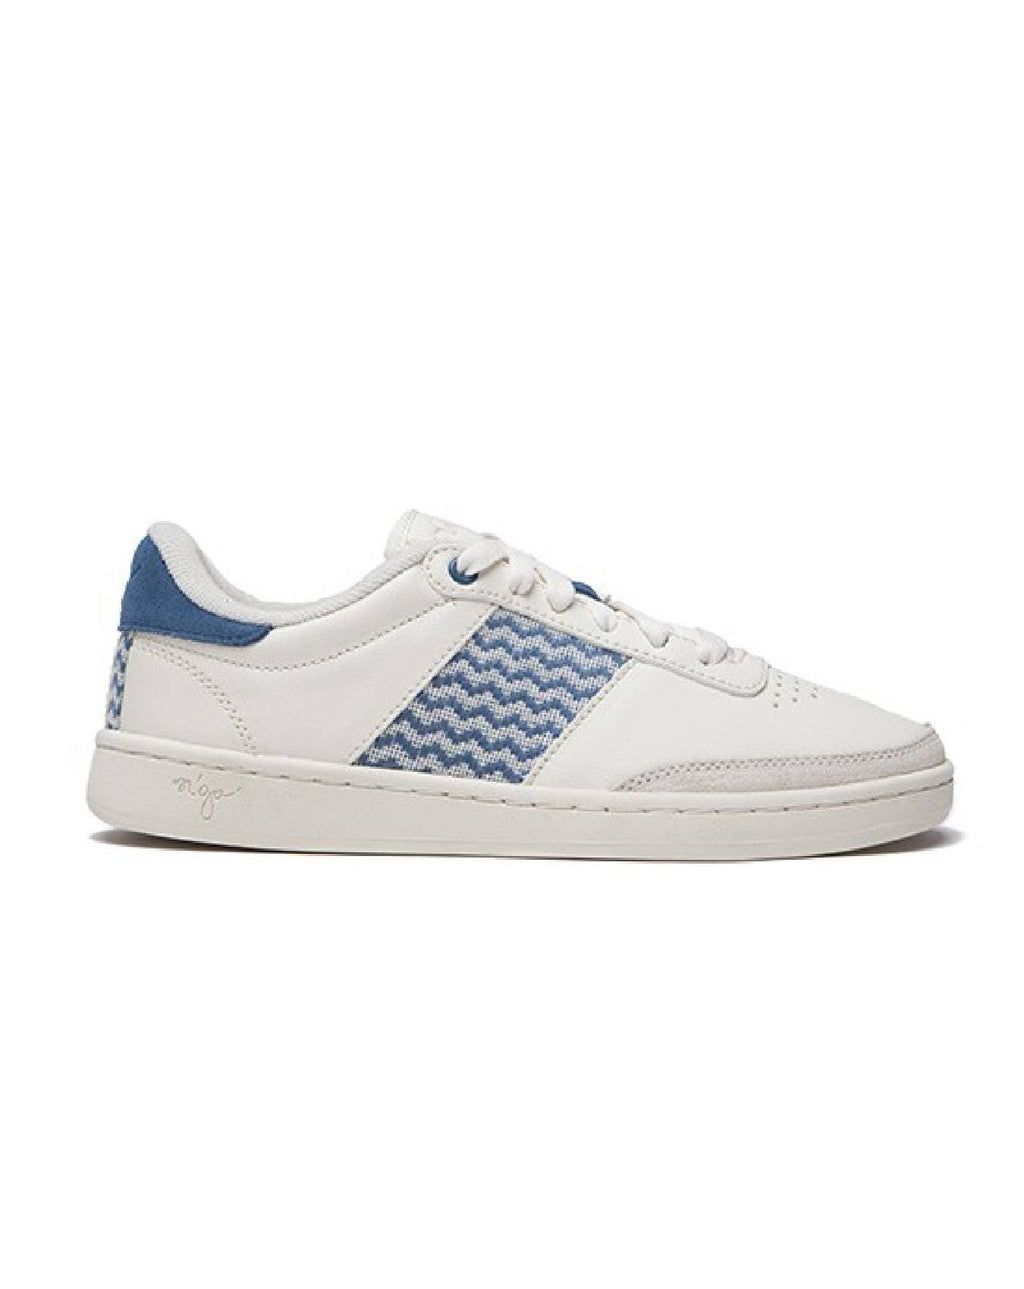 Ky Co herre sneakers - noia.shop